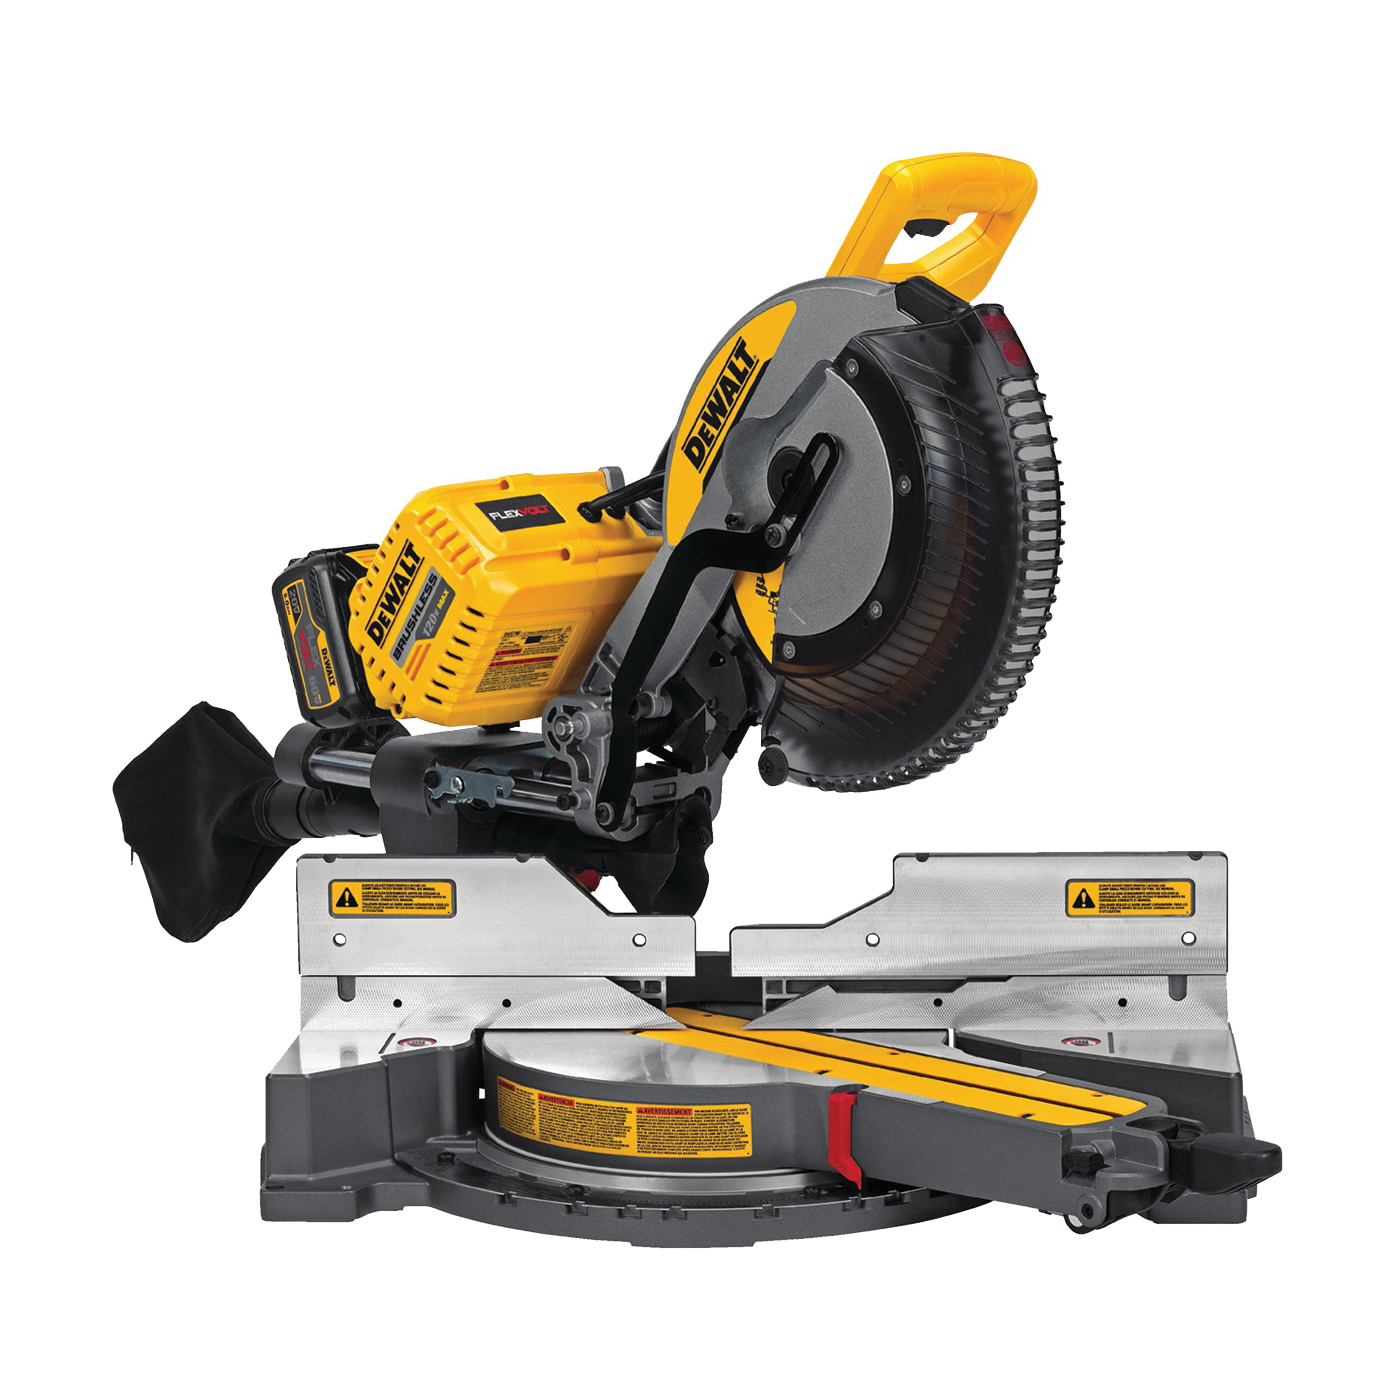 Picture of DeWALT FLEXVOLT DHS790AT2 Miter Saw, Battery, 12 in Dia Blade, 2 x 14 in 45 deg, 2 x 14 in at 90 deg Cutting Capacity